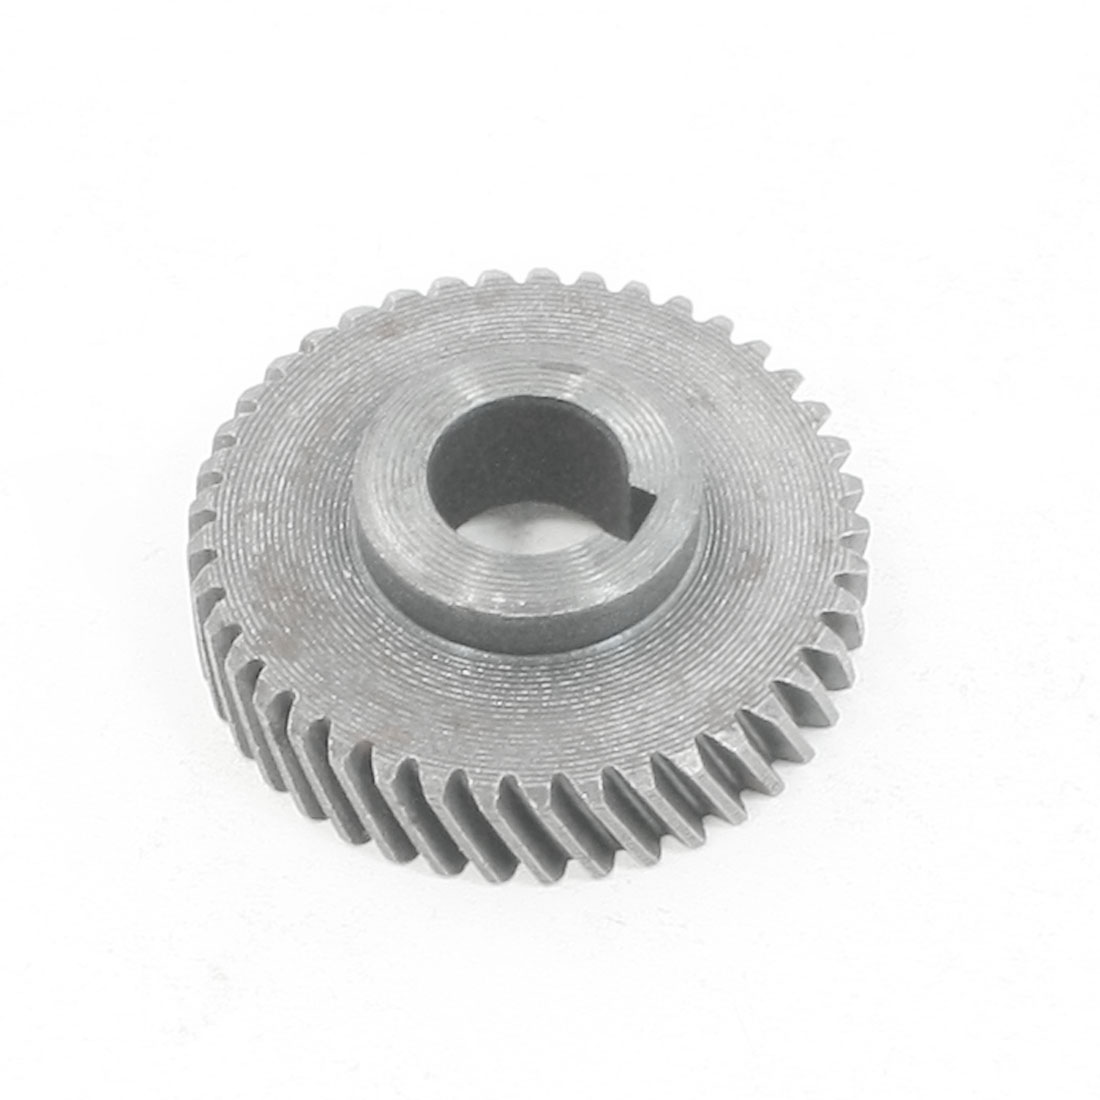 Power Tool Replacement Part Helical Gear Wheel 41T for Bosch 10A Electric Drill